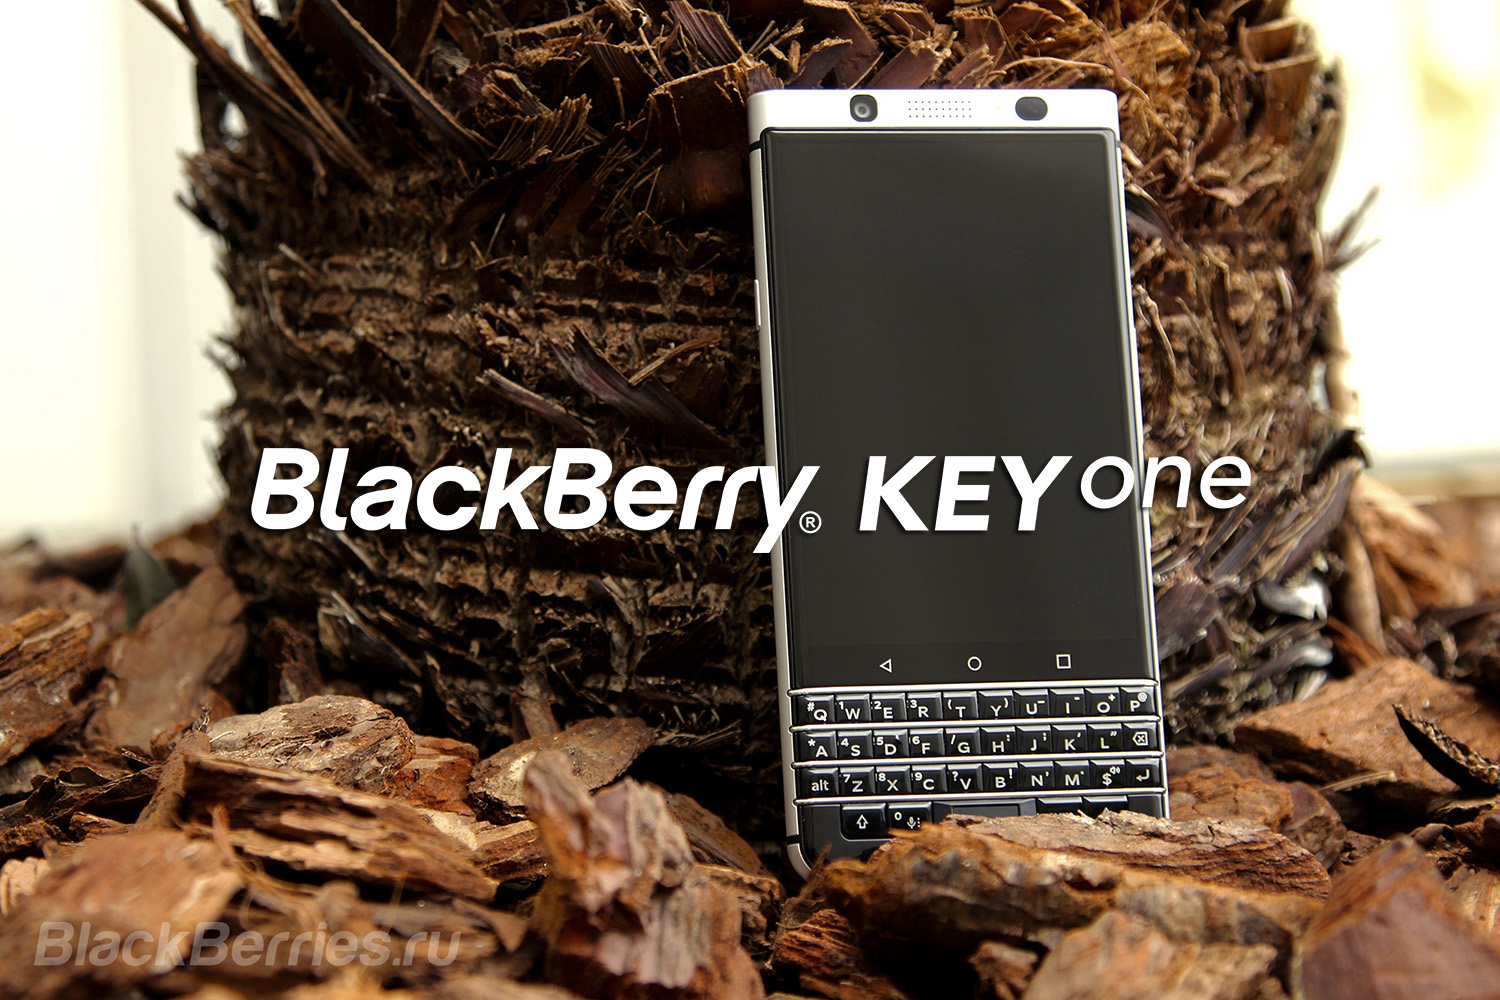 BlackBerry-Keyone-Shop-1